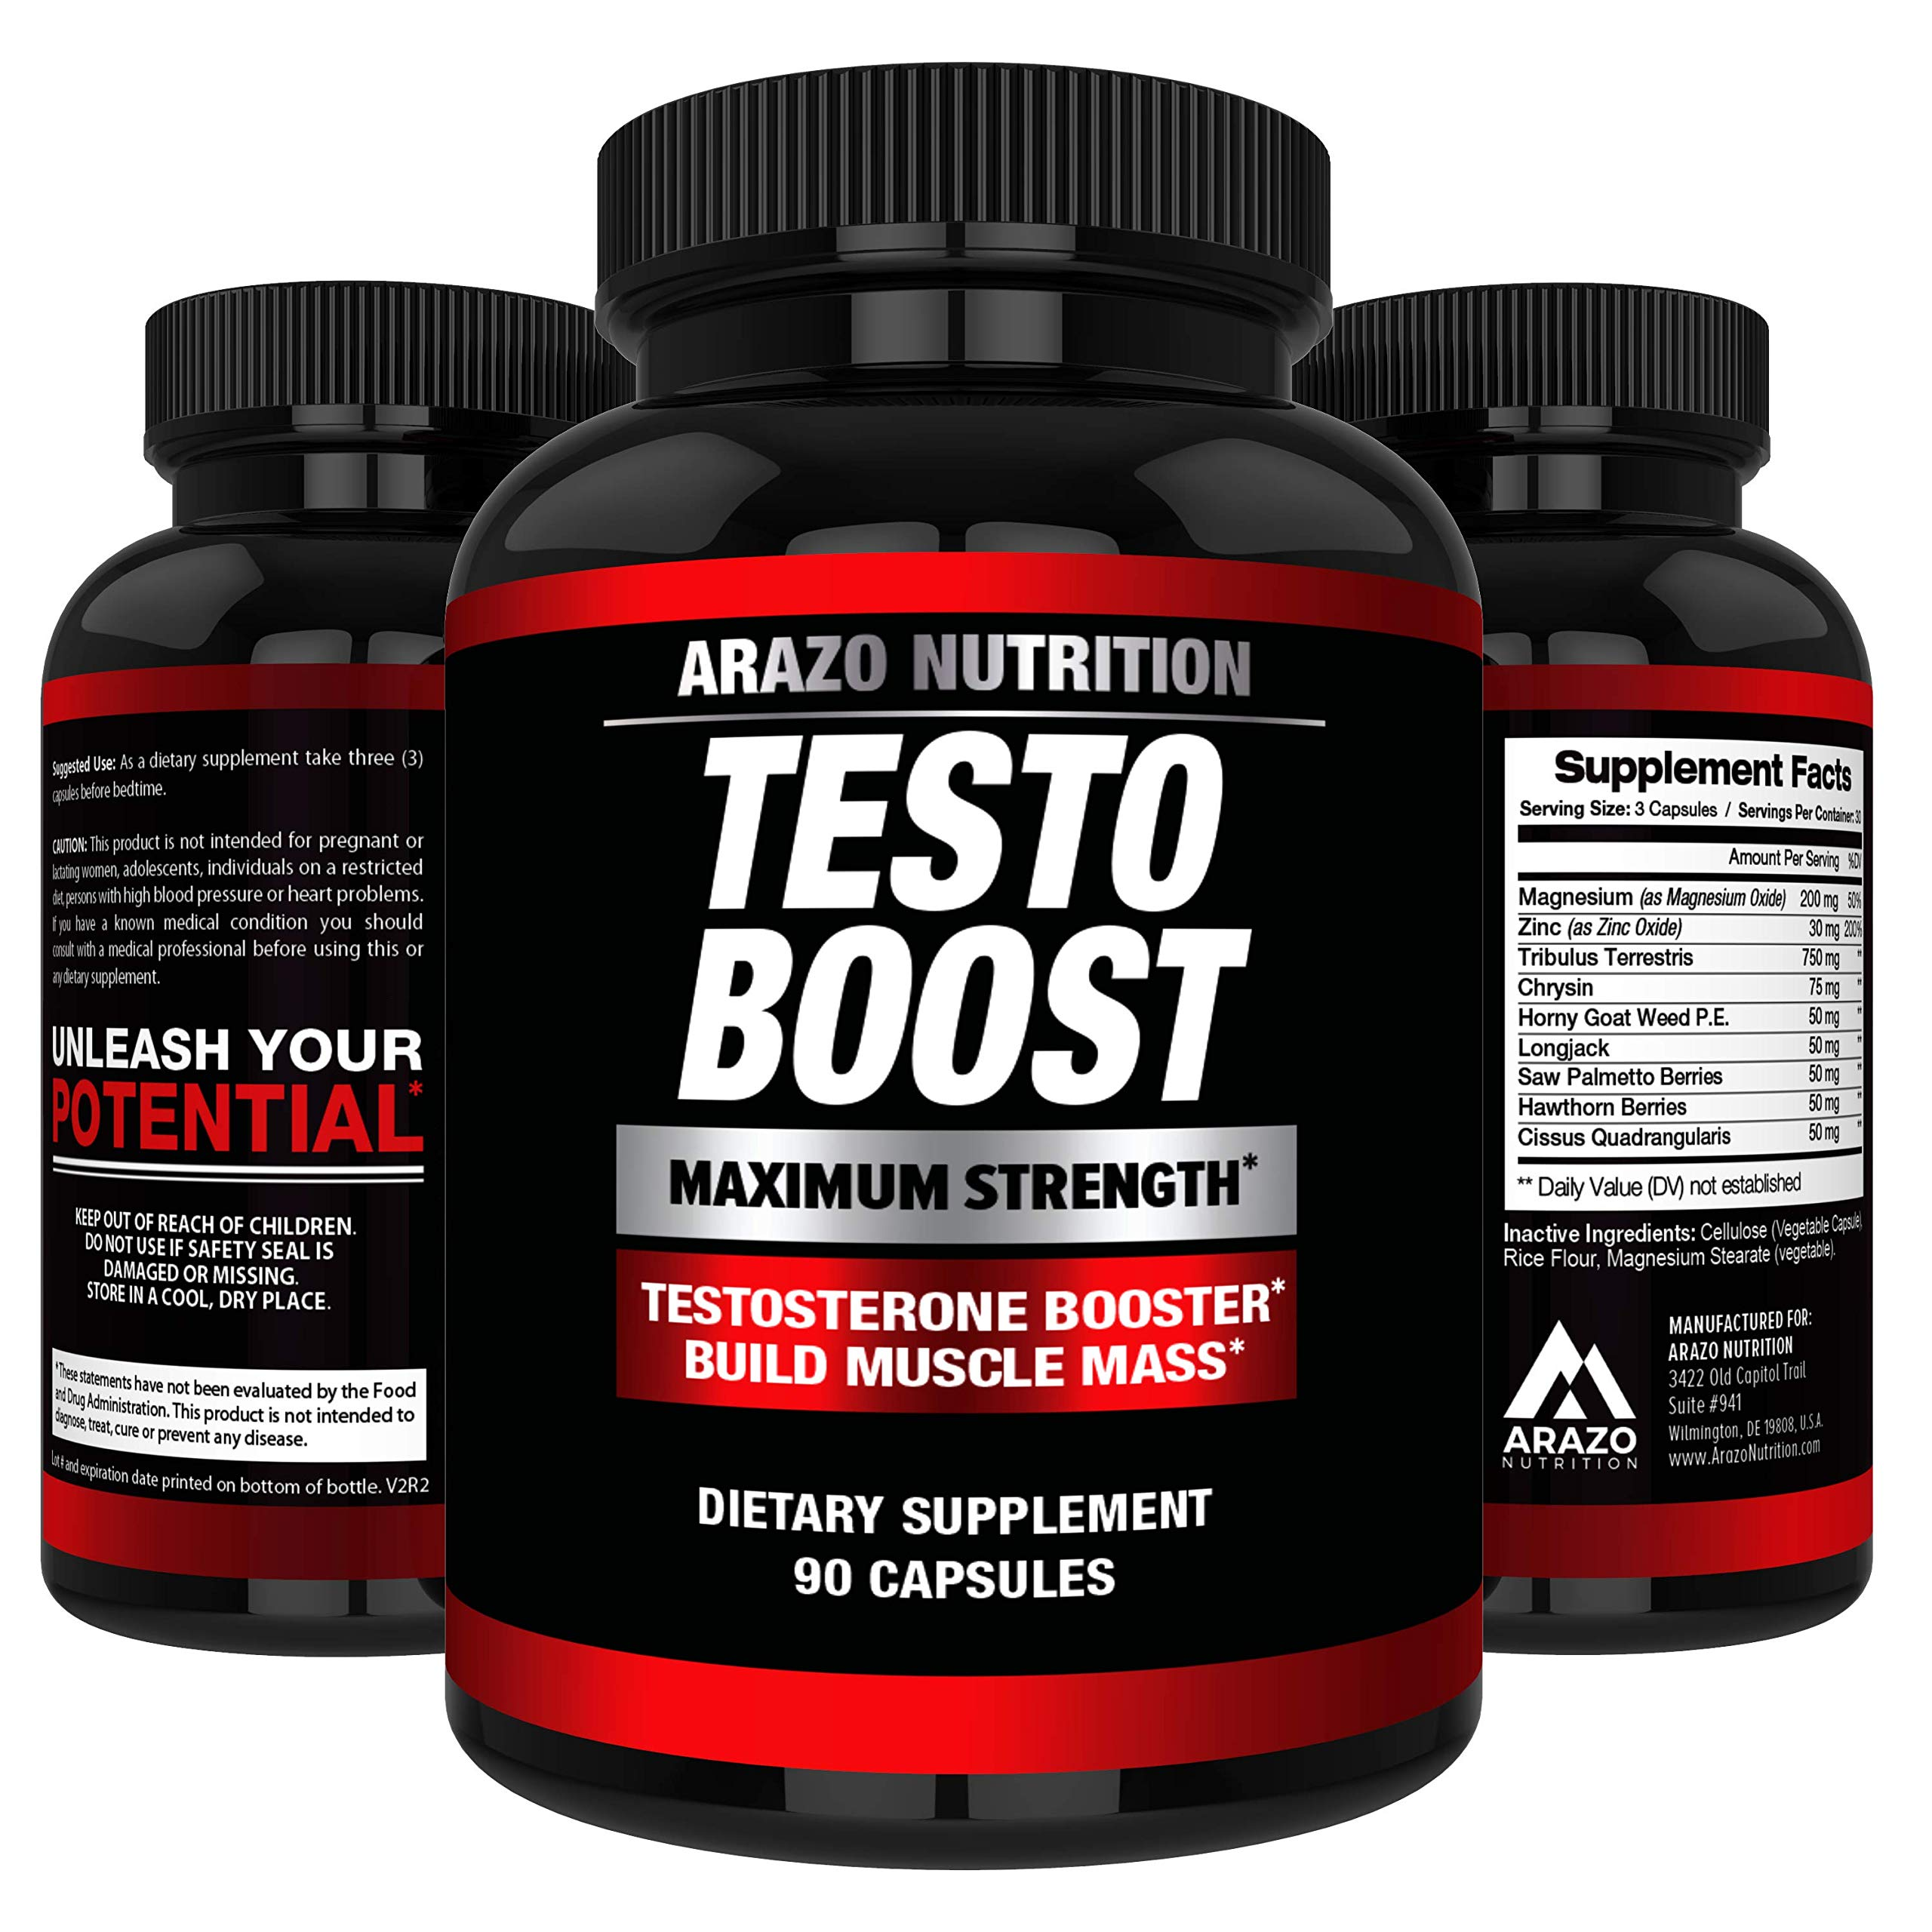 TESTOBOOST Test Booster Supplement - Potent & Natural Herbal Pills - Boost Muscle Growth - Tribulus, Horny Goat Weed, Hawthorn, Zinc, Minerals - Arazo Nutrition USA by Arazo Nutrition